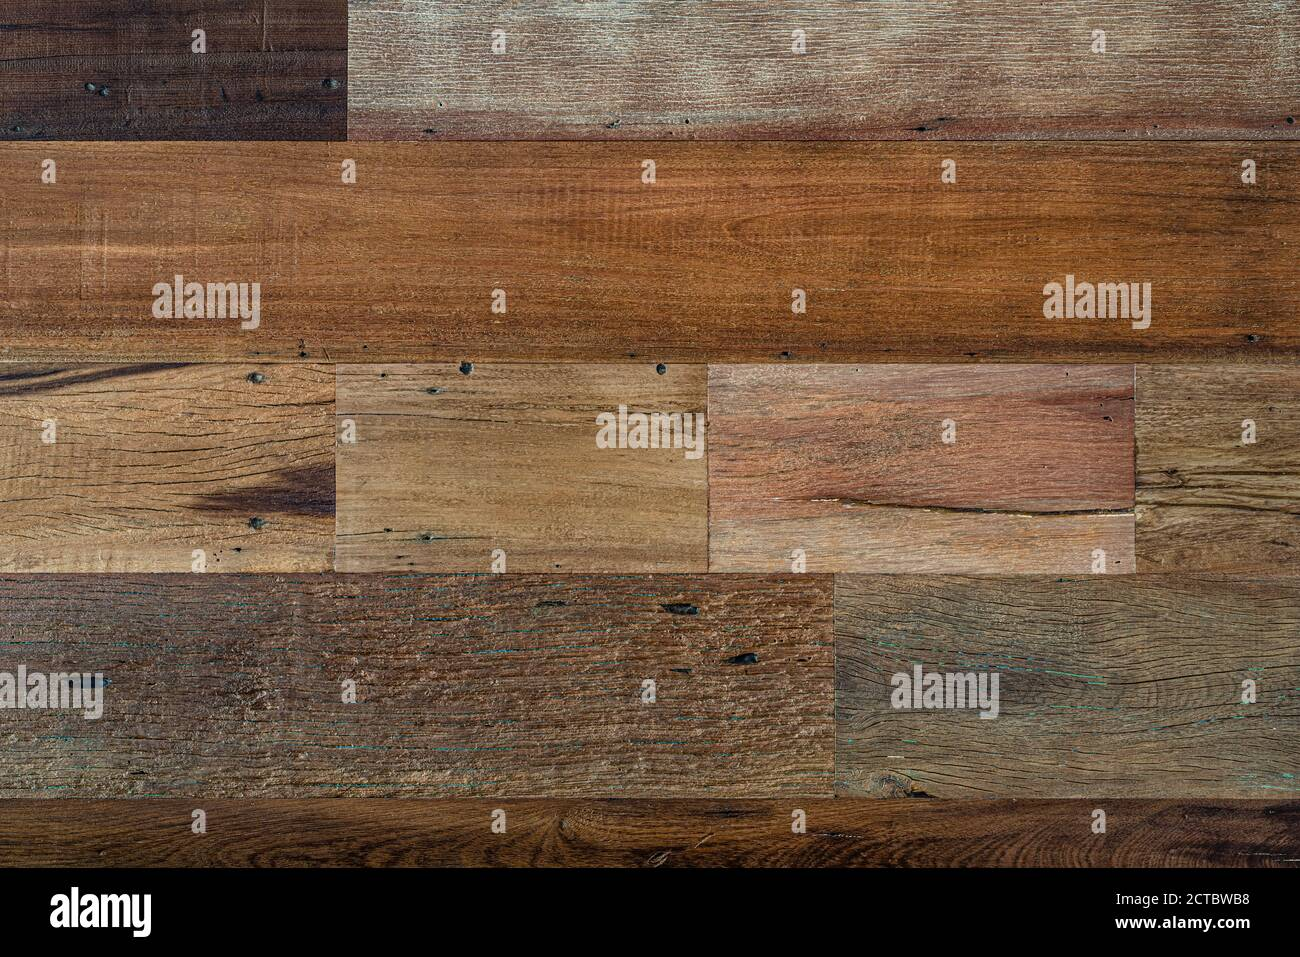 Wood Paneling Wall High Resolution Stock Photography And Images Alamy